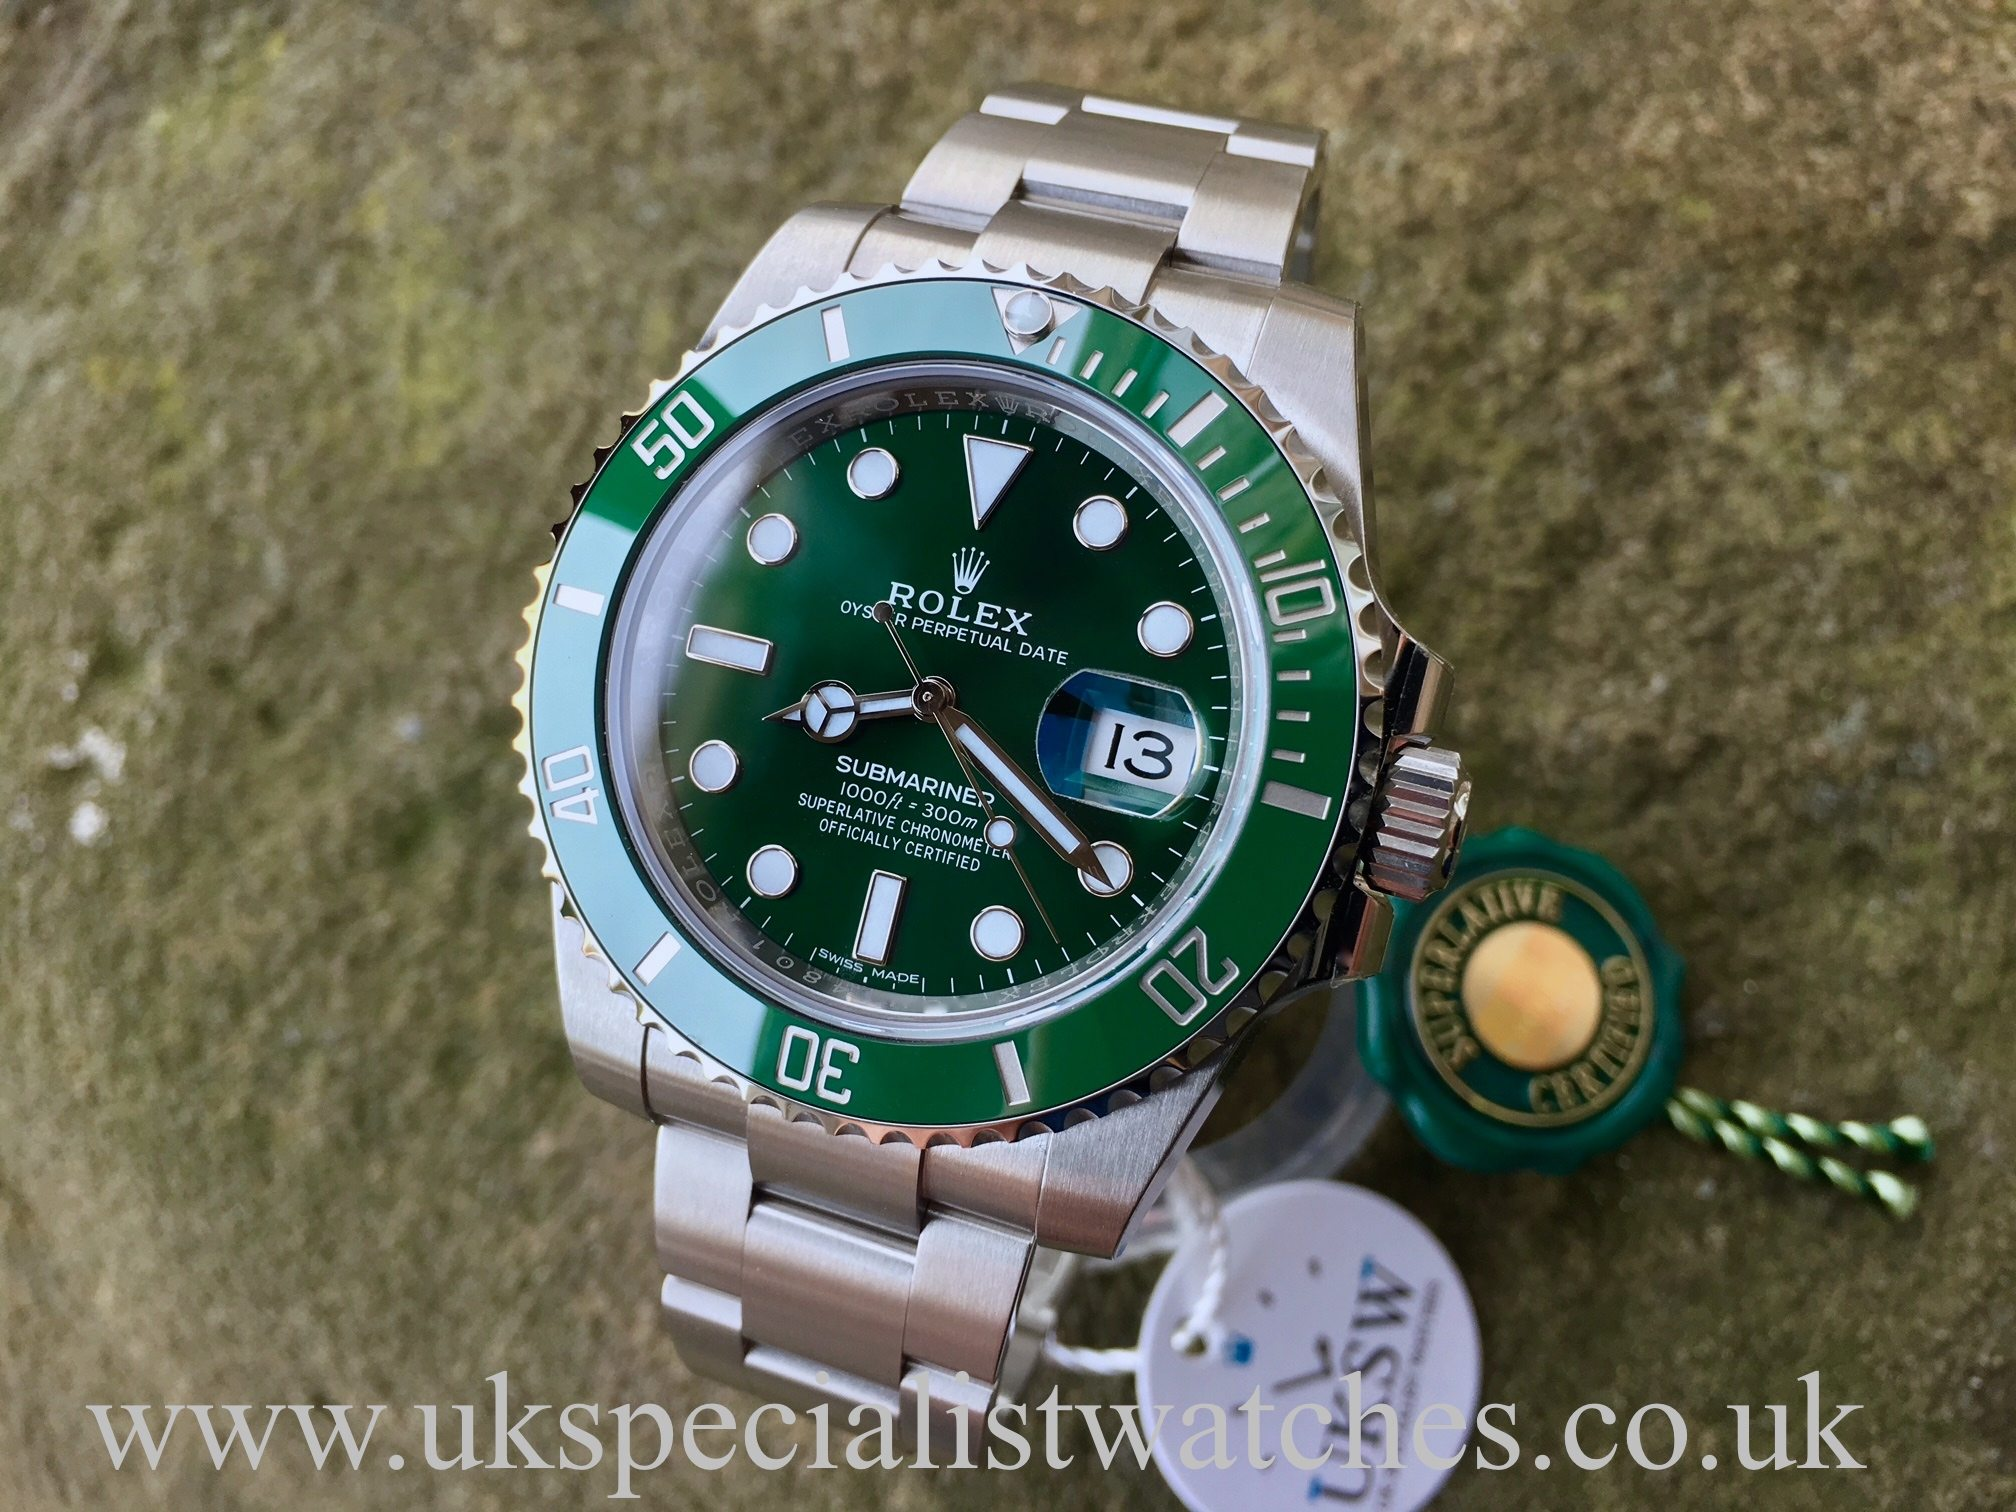 Rolex Green Submariner \u201cHulk\u201d , 116610LV , Full Set